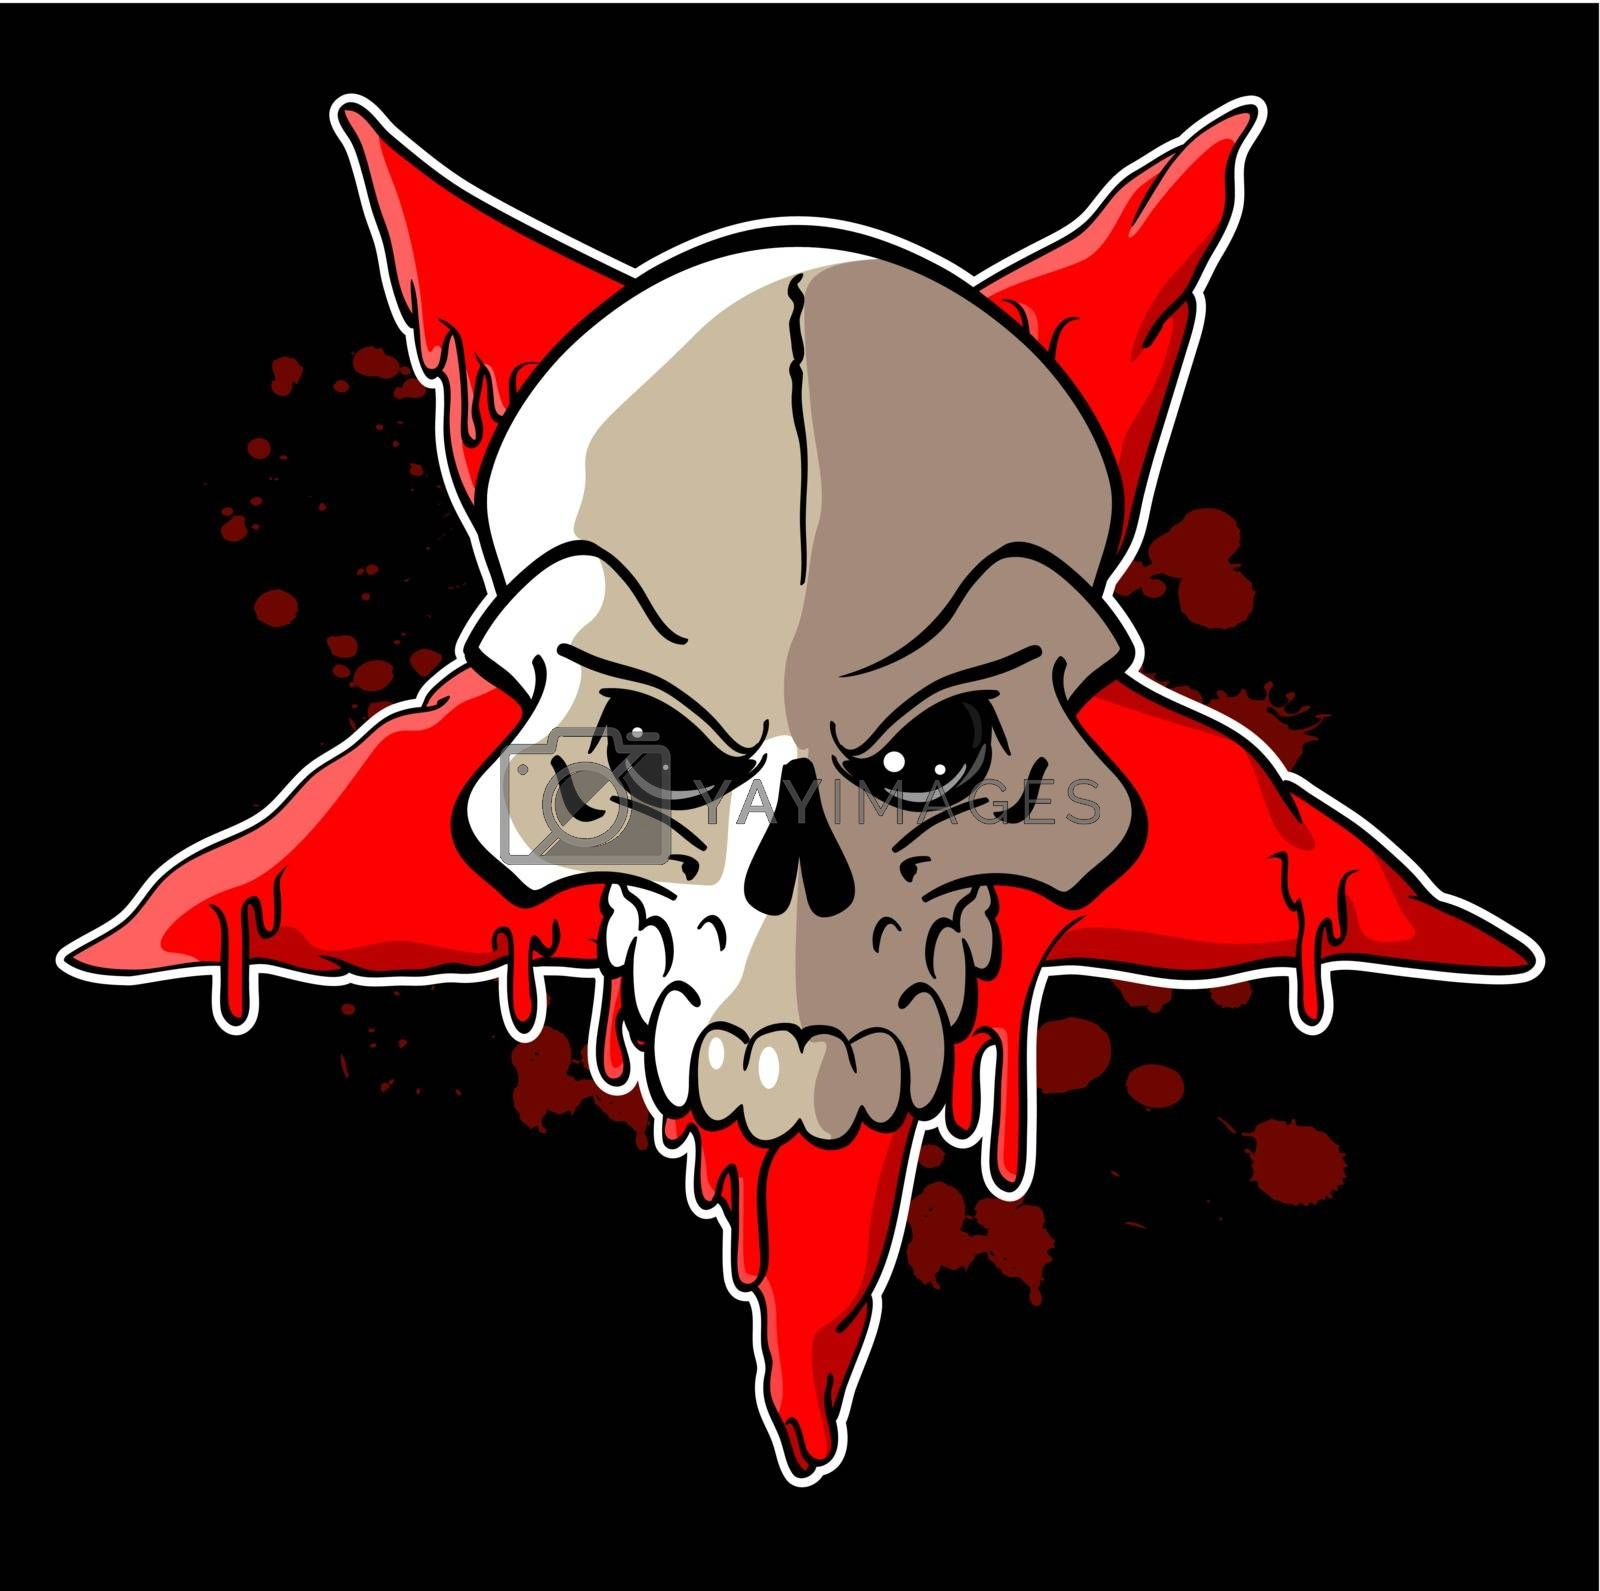 Skull on inverted red star on a black background